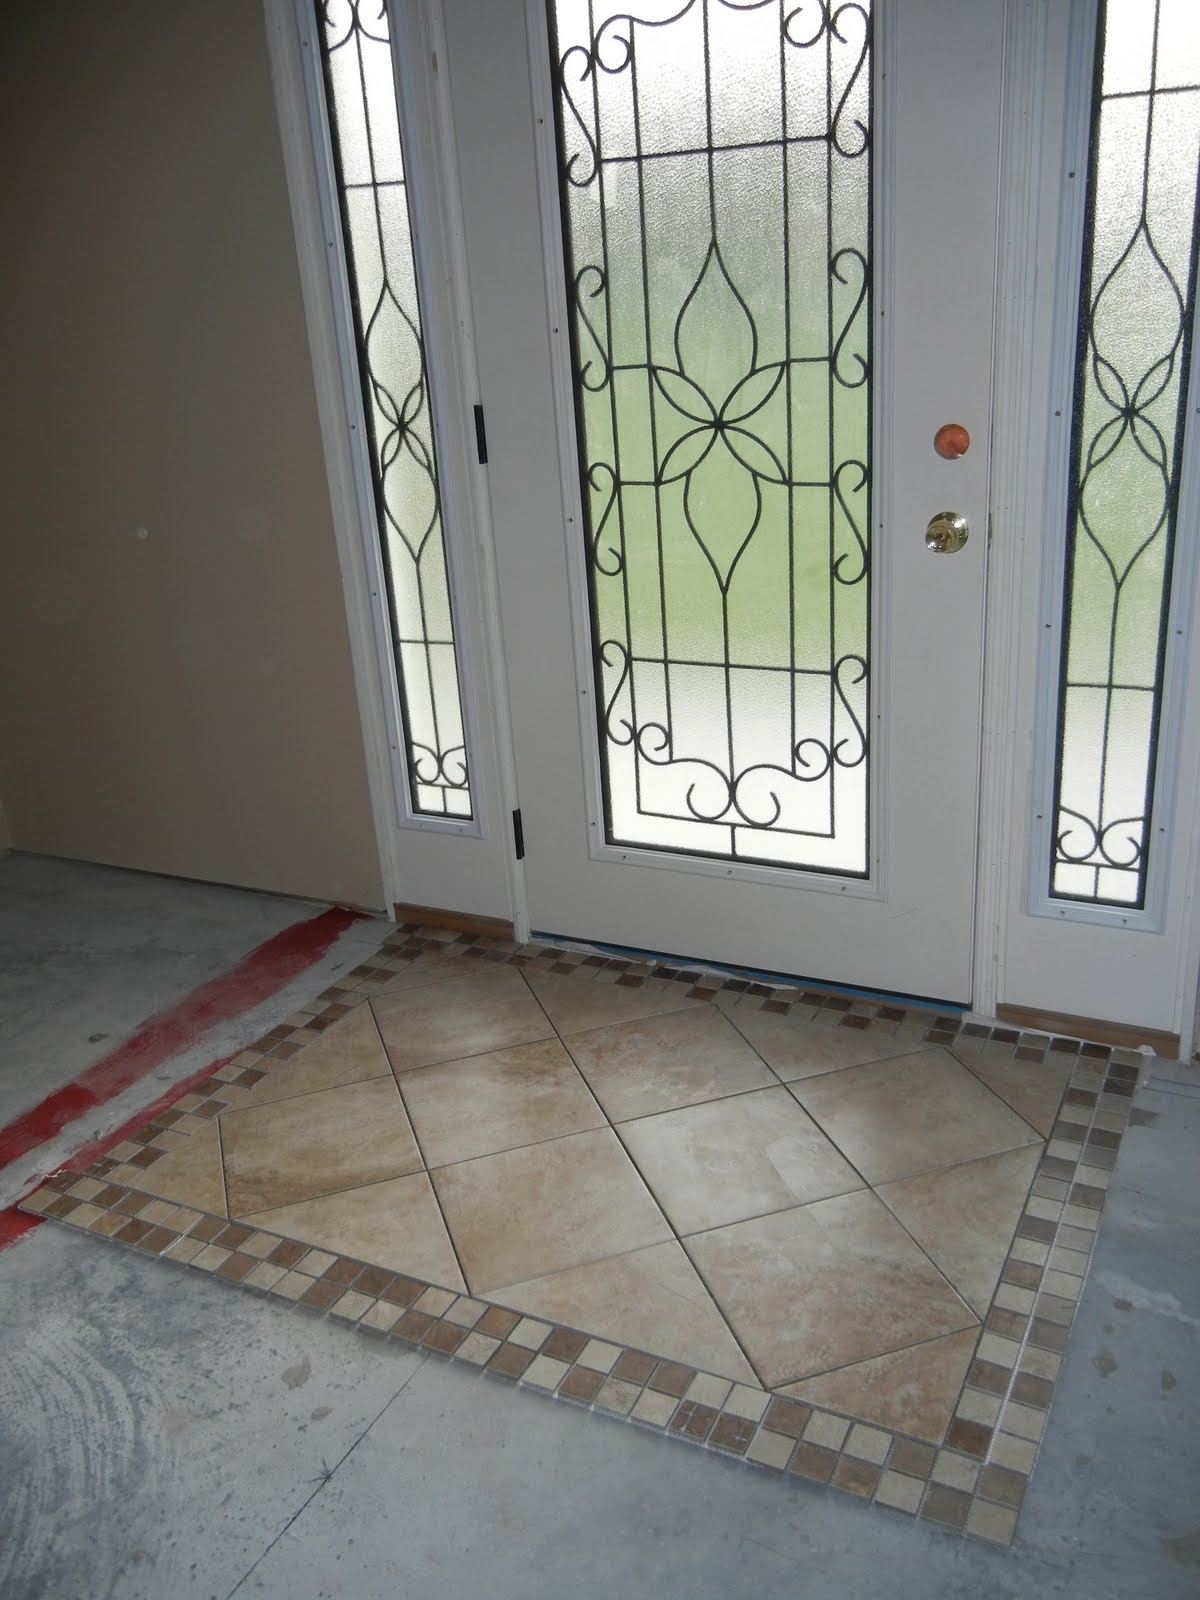 Front Foyer Tile Pictures : Double oak plantation front door foyer tiled quot rug area